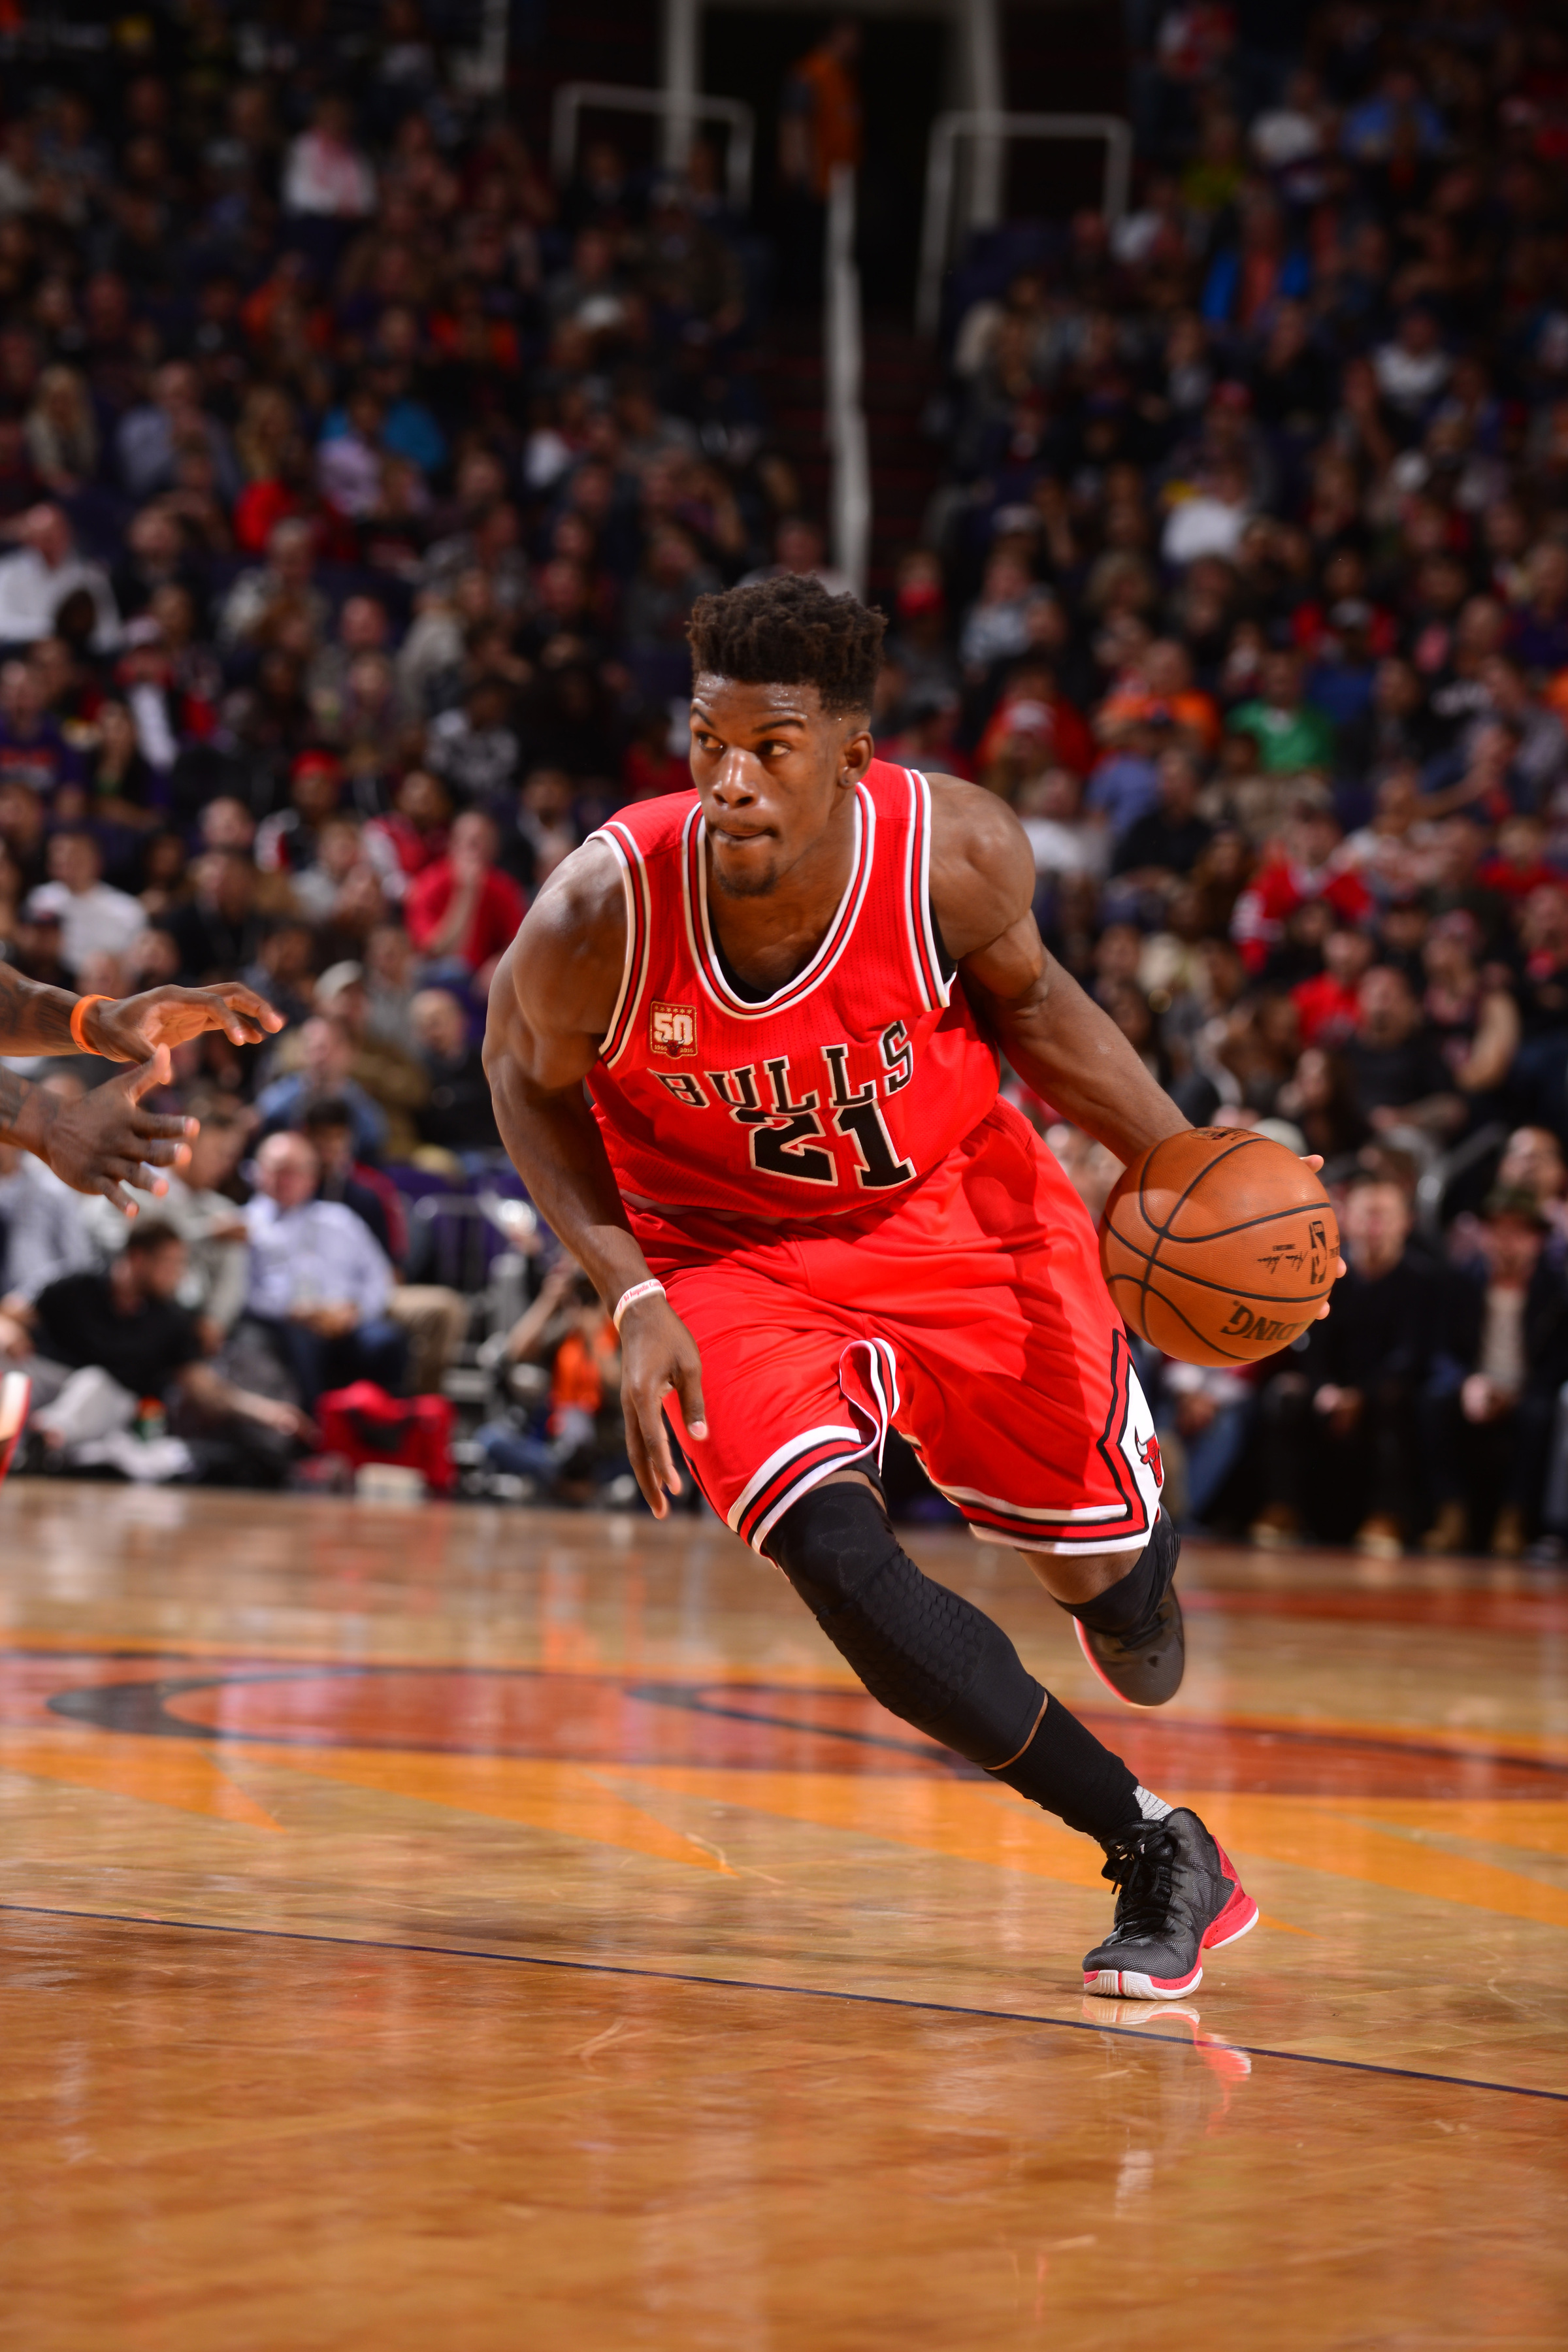 PHOENIX, AZ - NOVEMBER 18:  Jimmy Butler #21 of the Chicago Bulls handles the ball against the Phoenix Suns on November 18, 2015 at Talking Stick Resort Arena in Phoenix, Arizona. (Photo by Barry Gossage/NBAE via Getty Images)